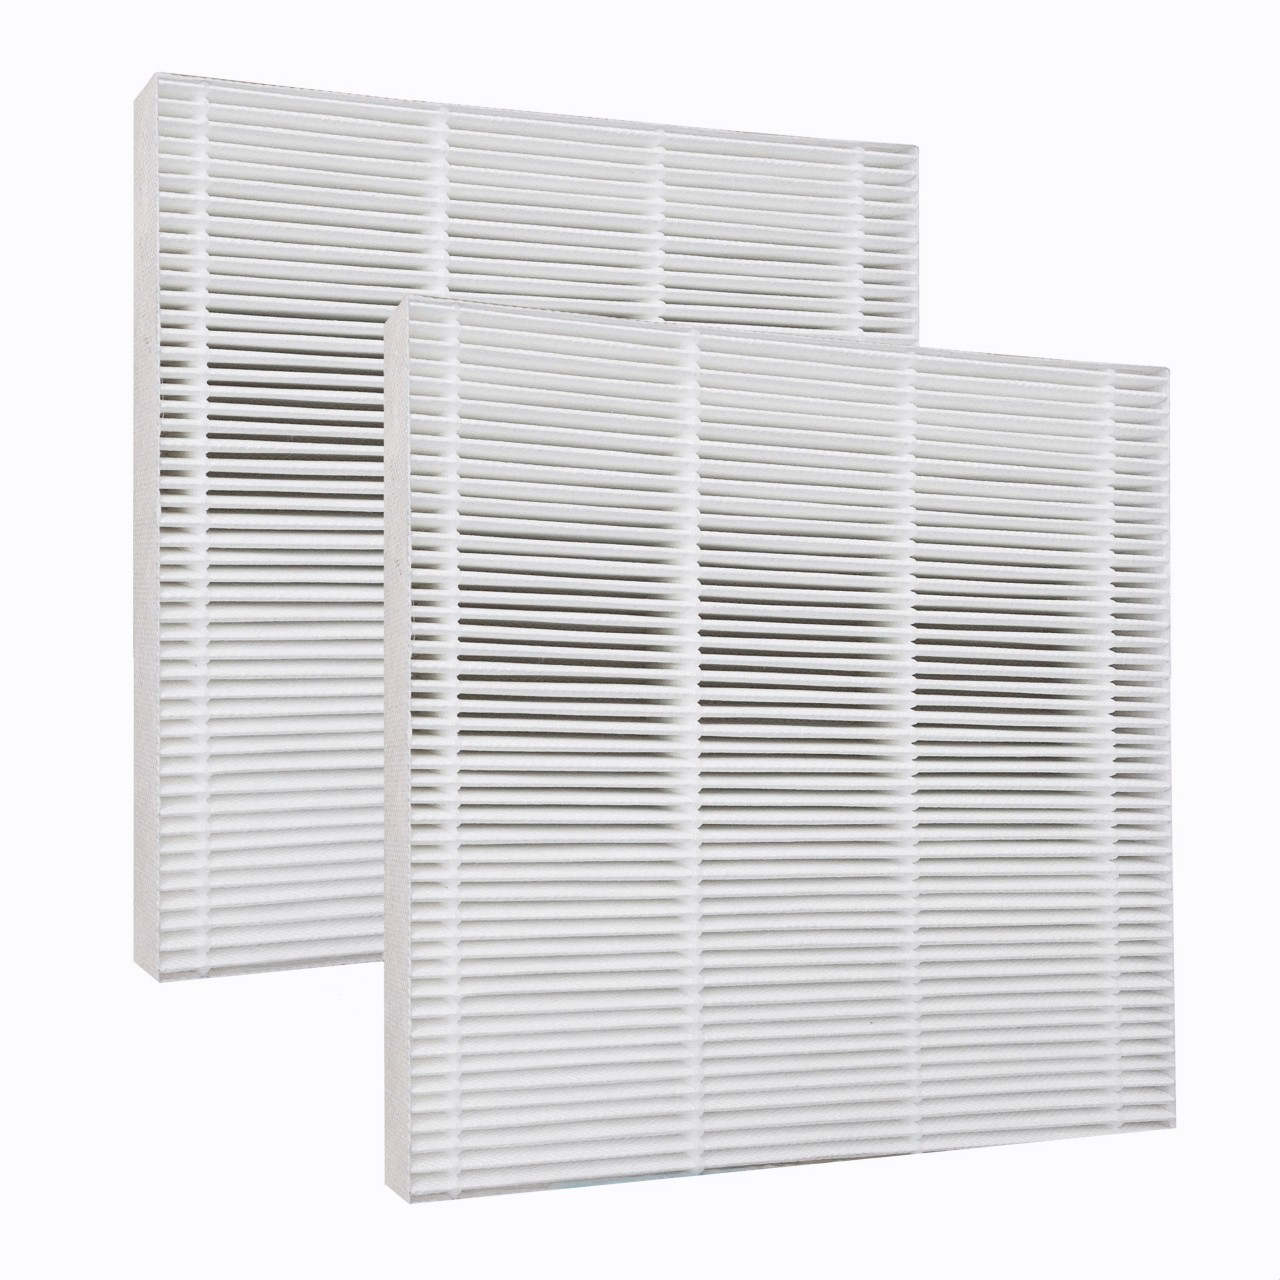 2 hepa filters for fresh air by ecoquest air purifier